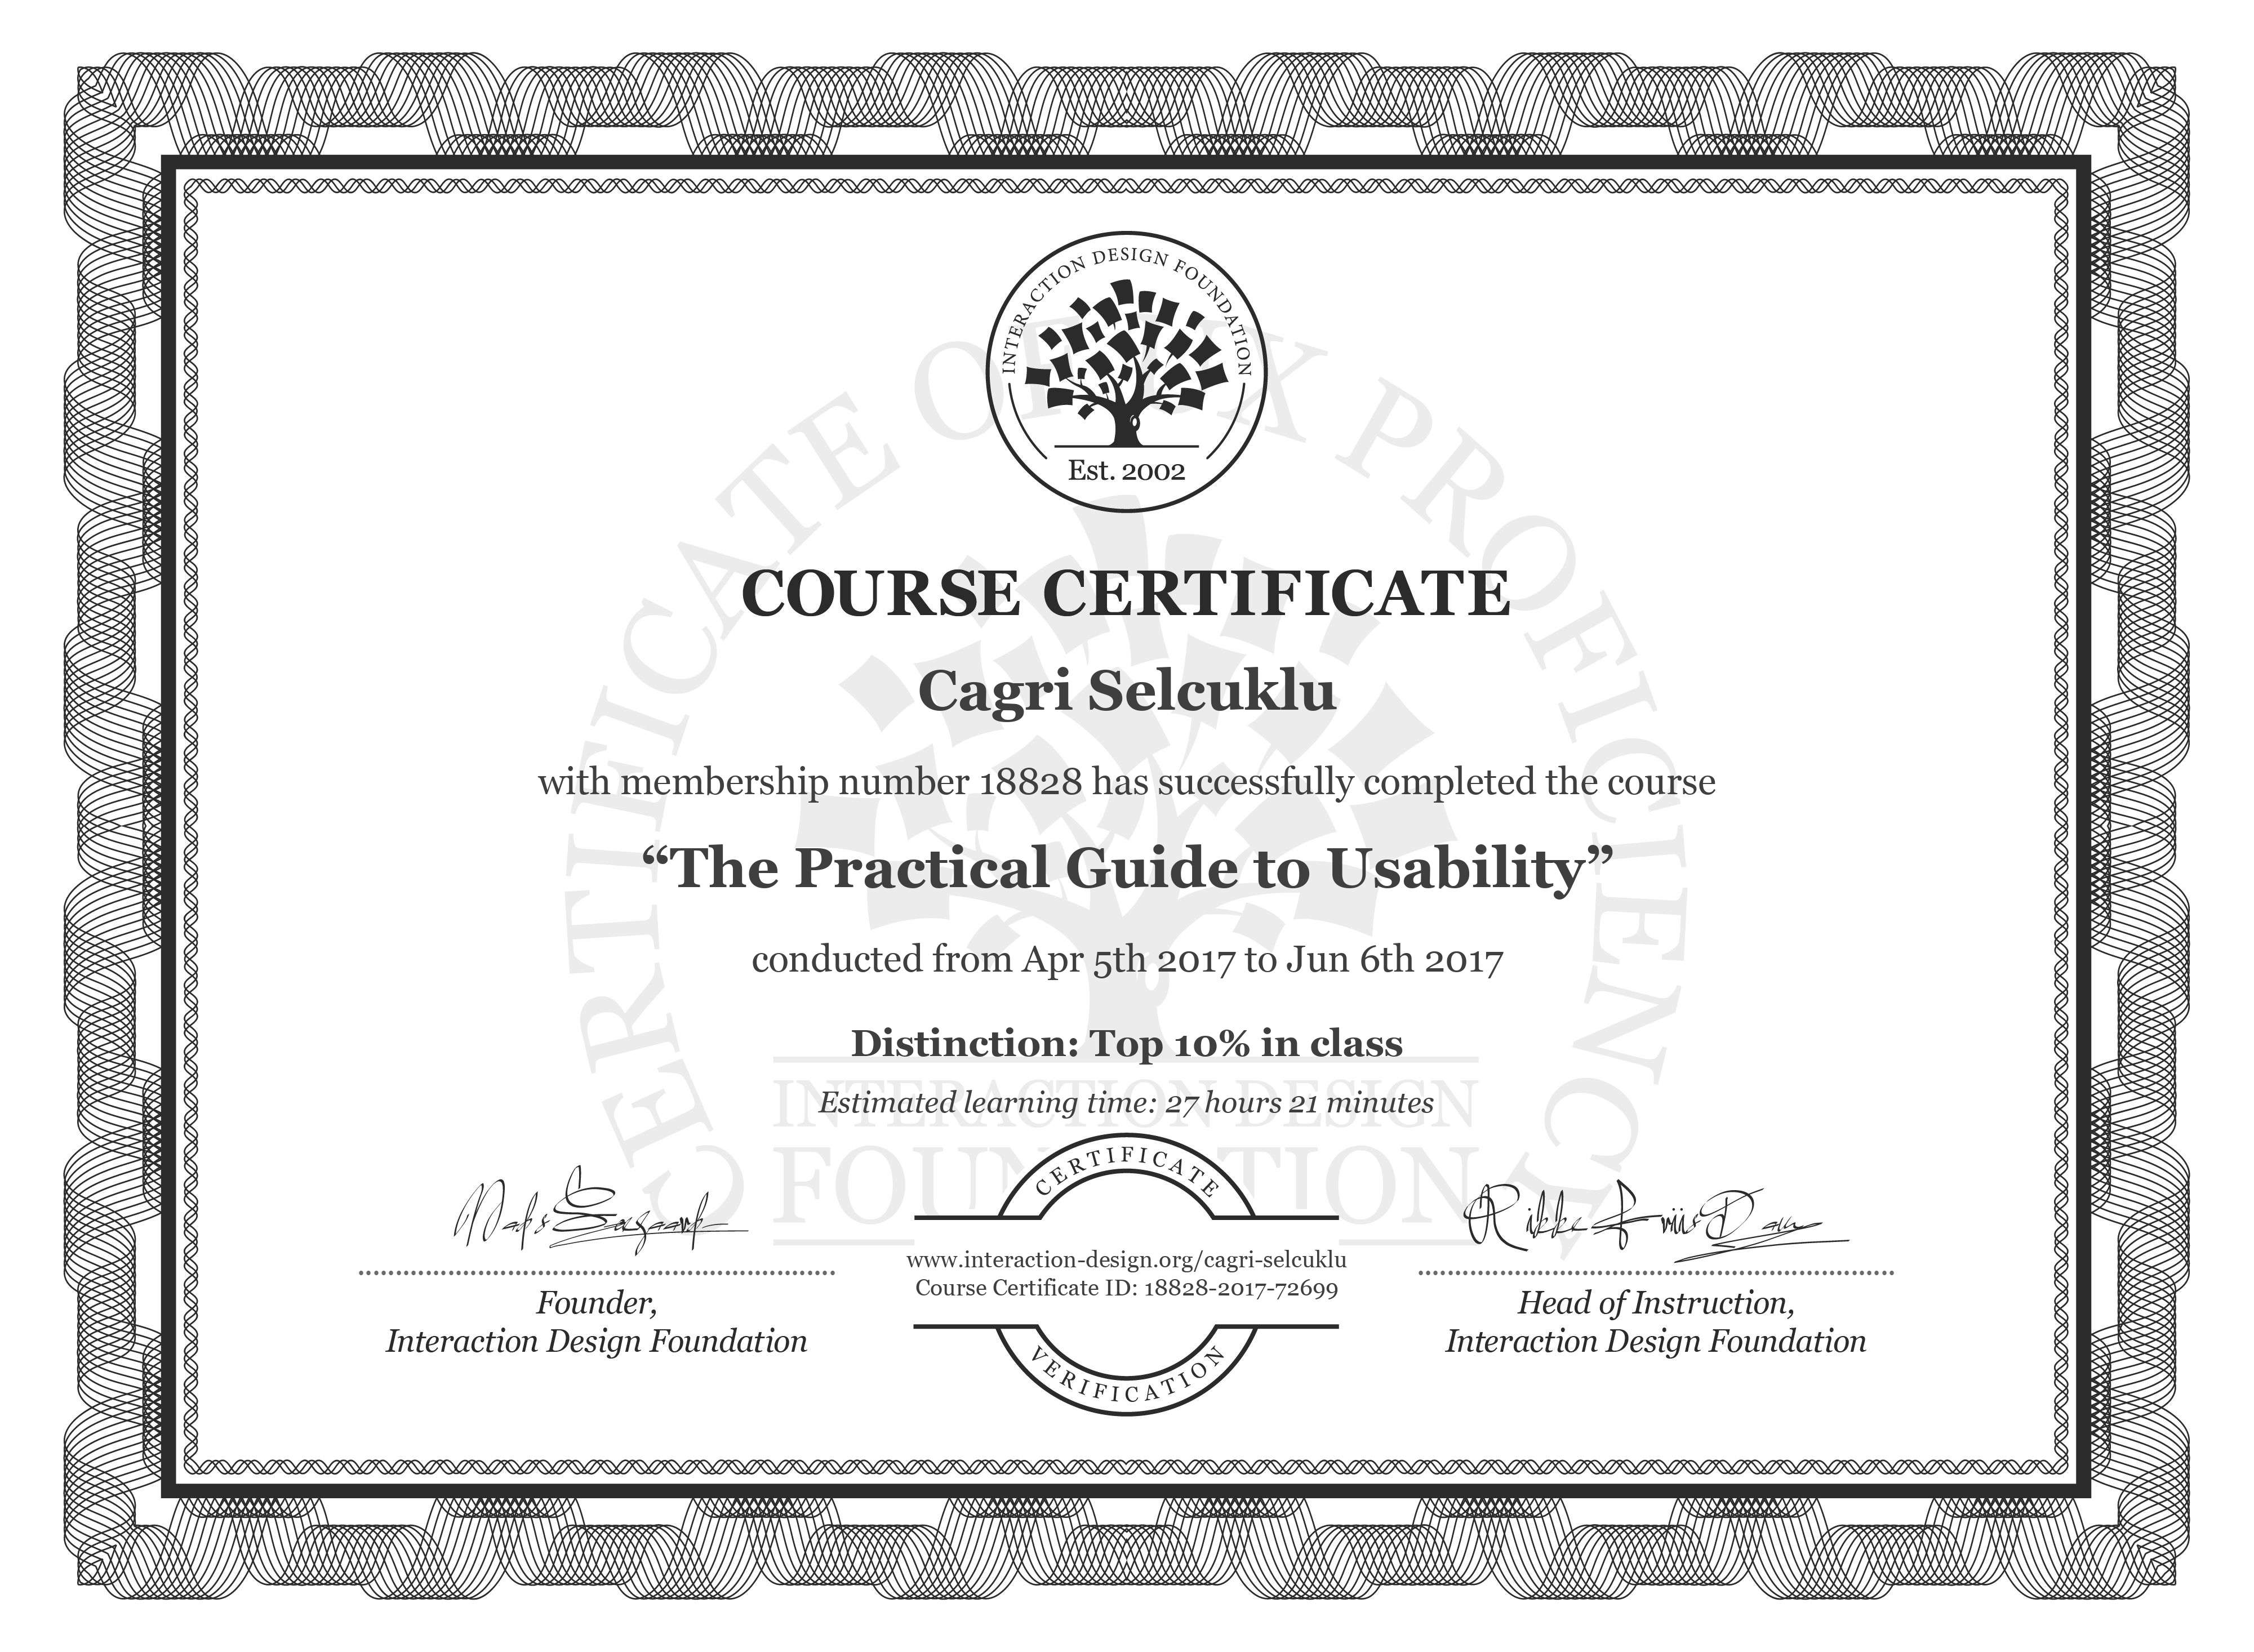 Cagri Selcuklu's Course Certificate: The Practical Guide to Usability